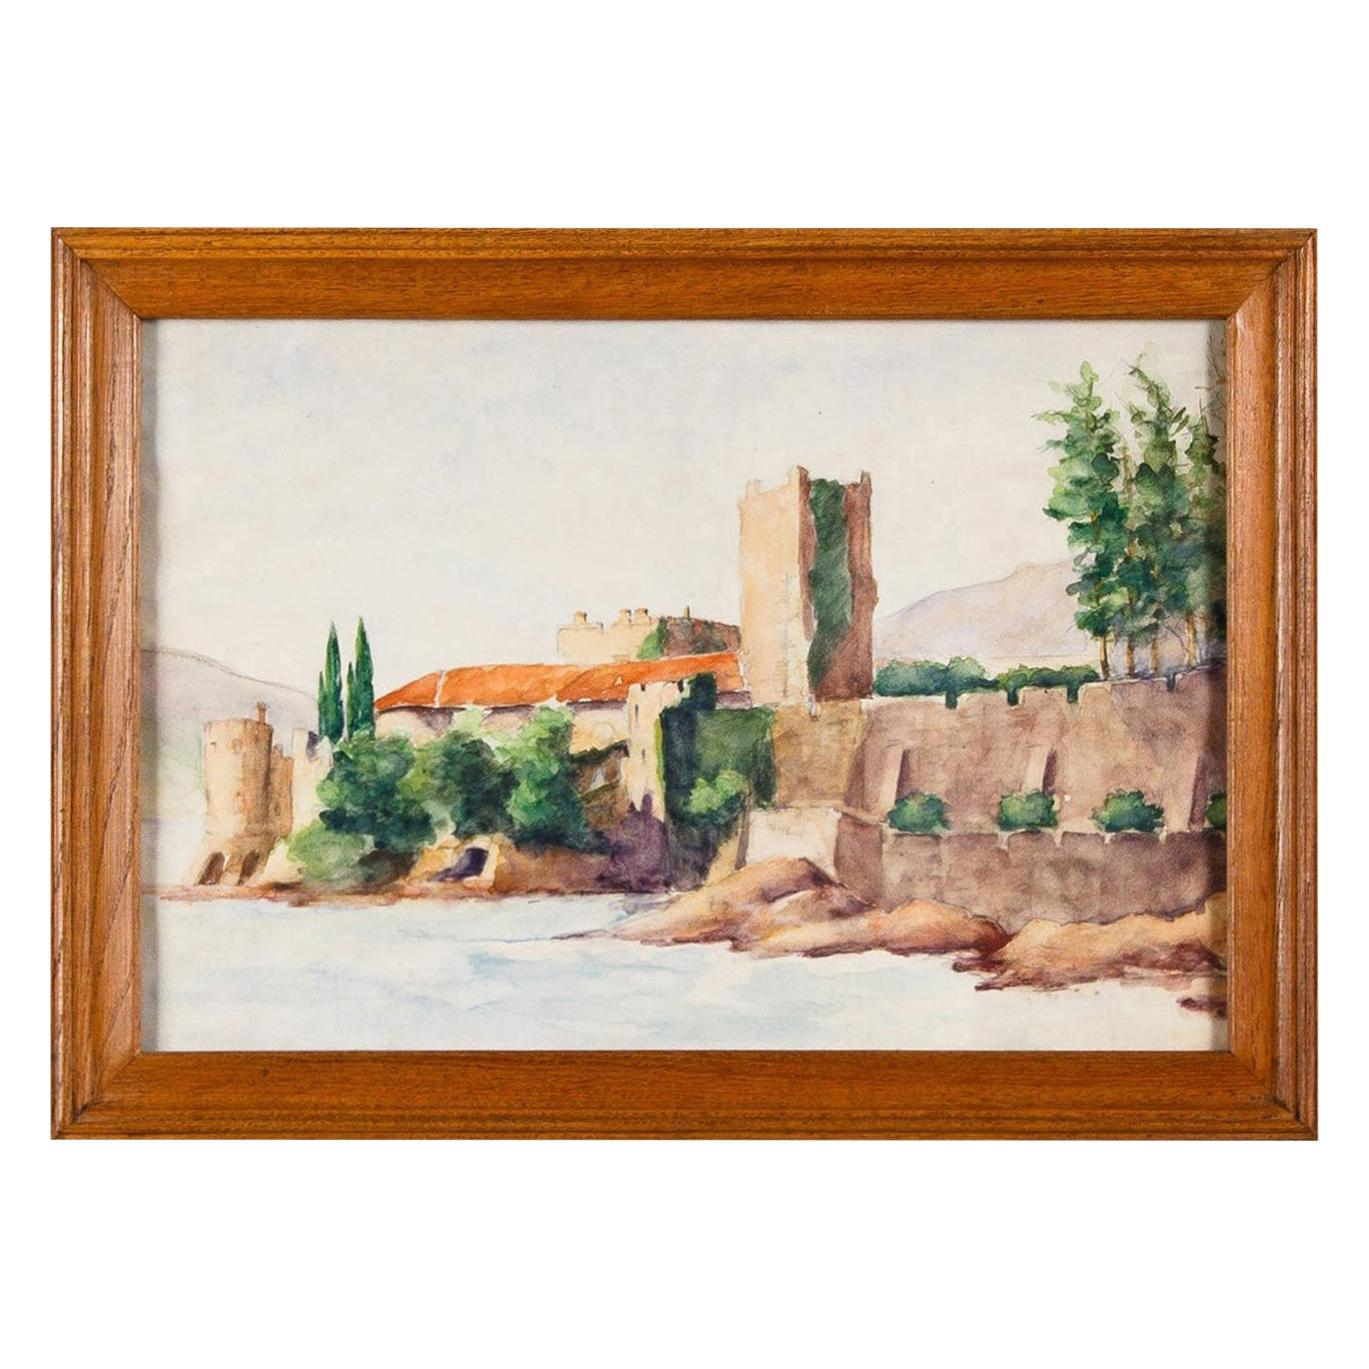 Framed Watercolor Painting with Fort, France, 20th Century